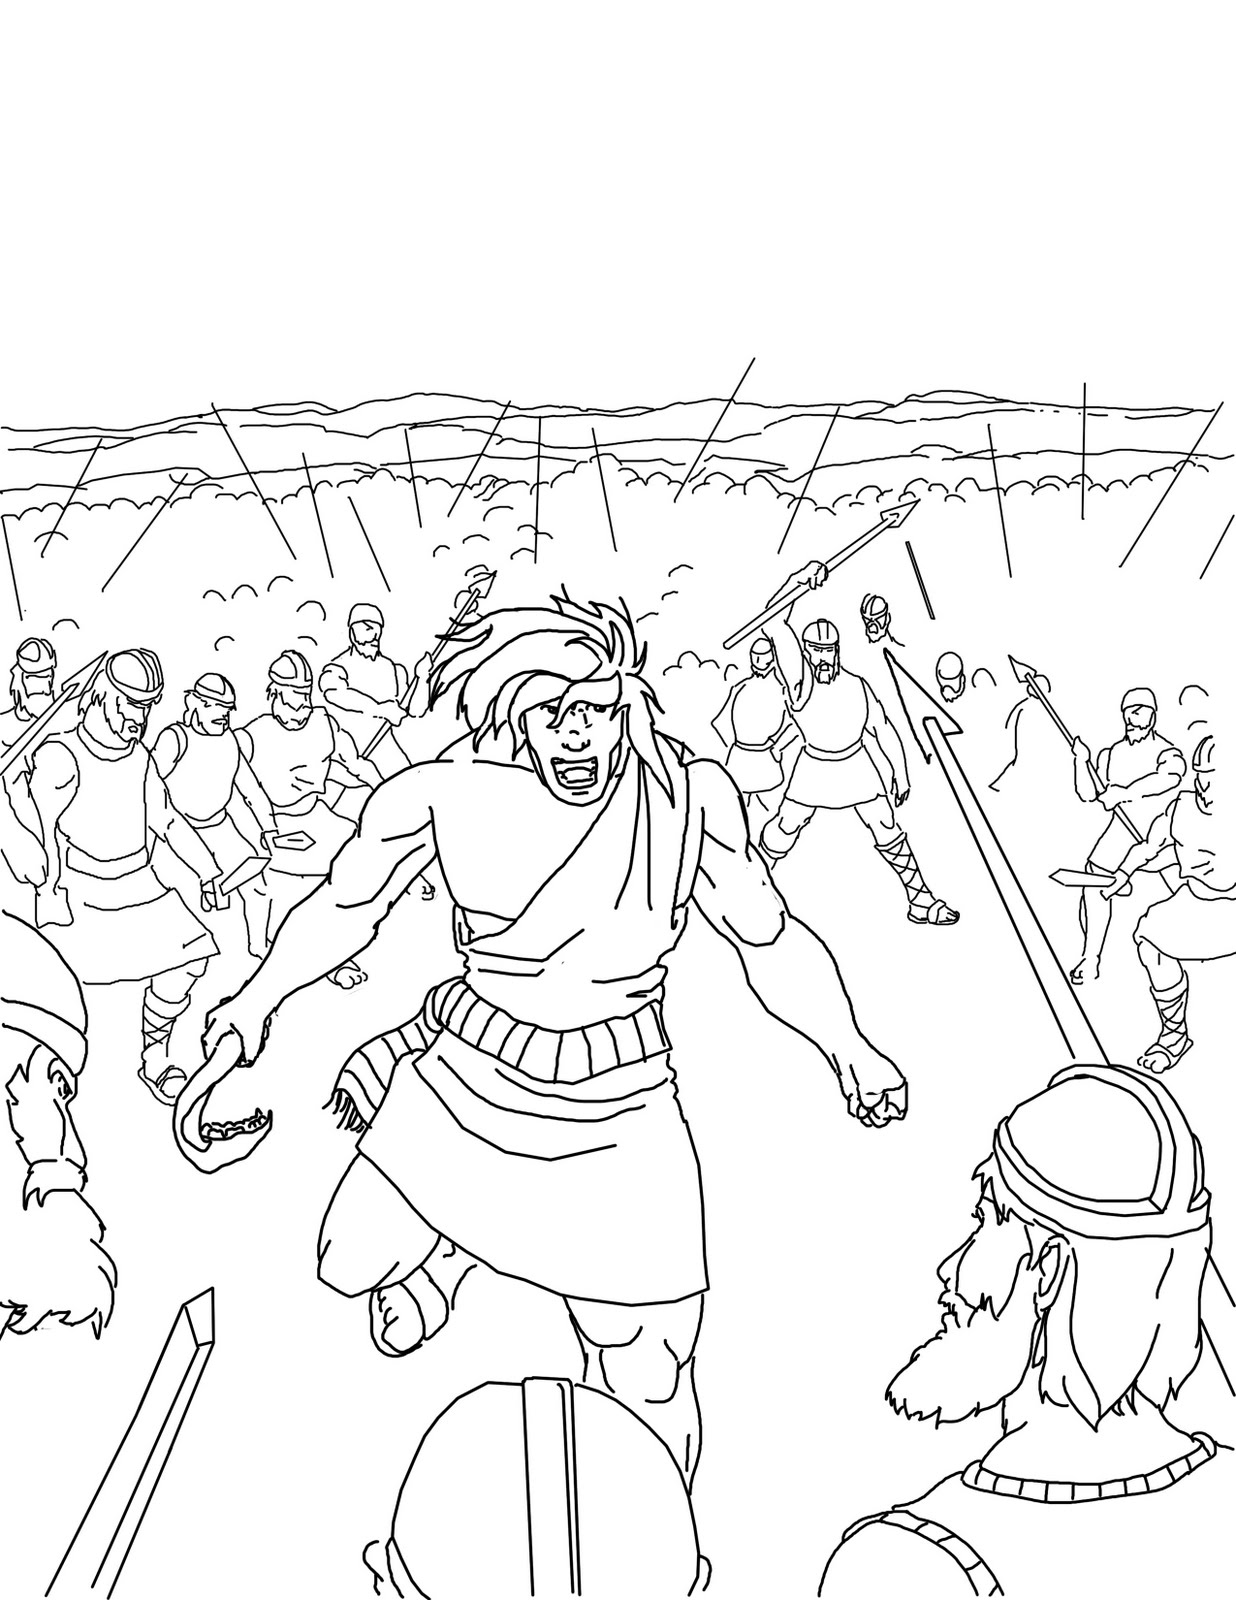 Samson bible coloring pages 9309178 - wild-thyme.info